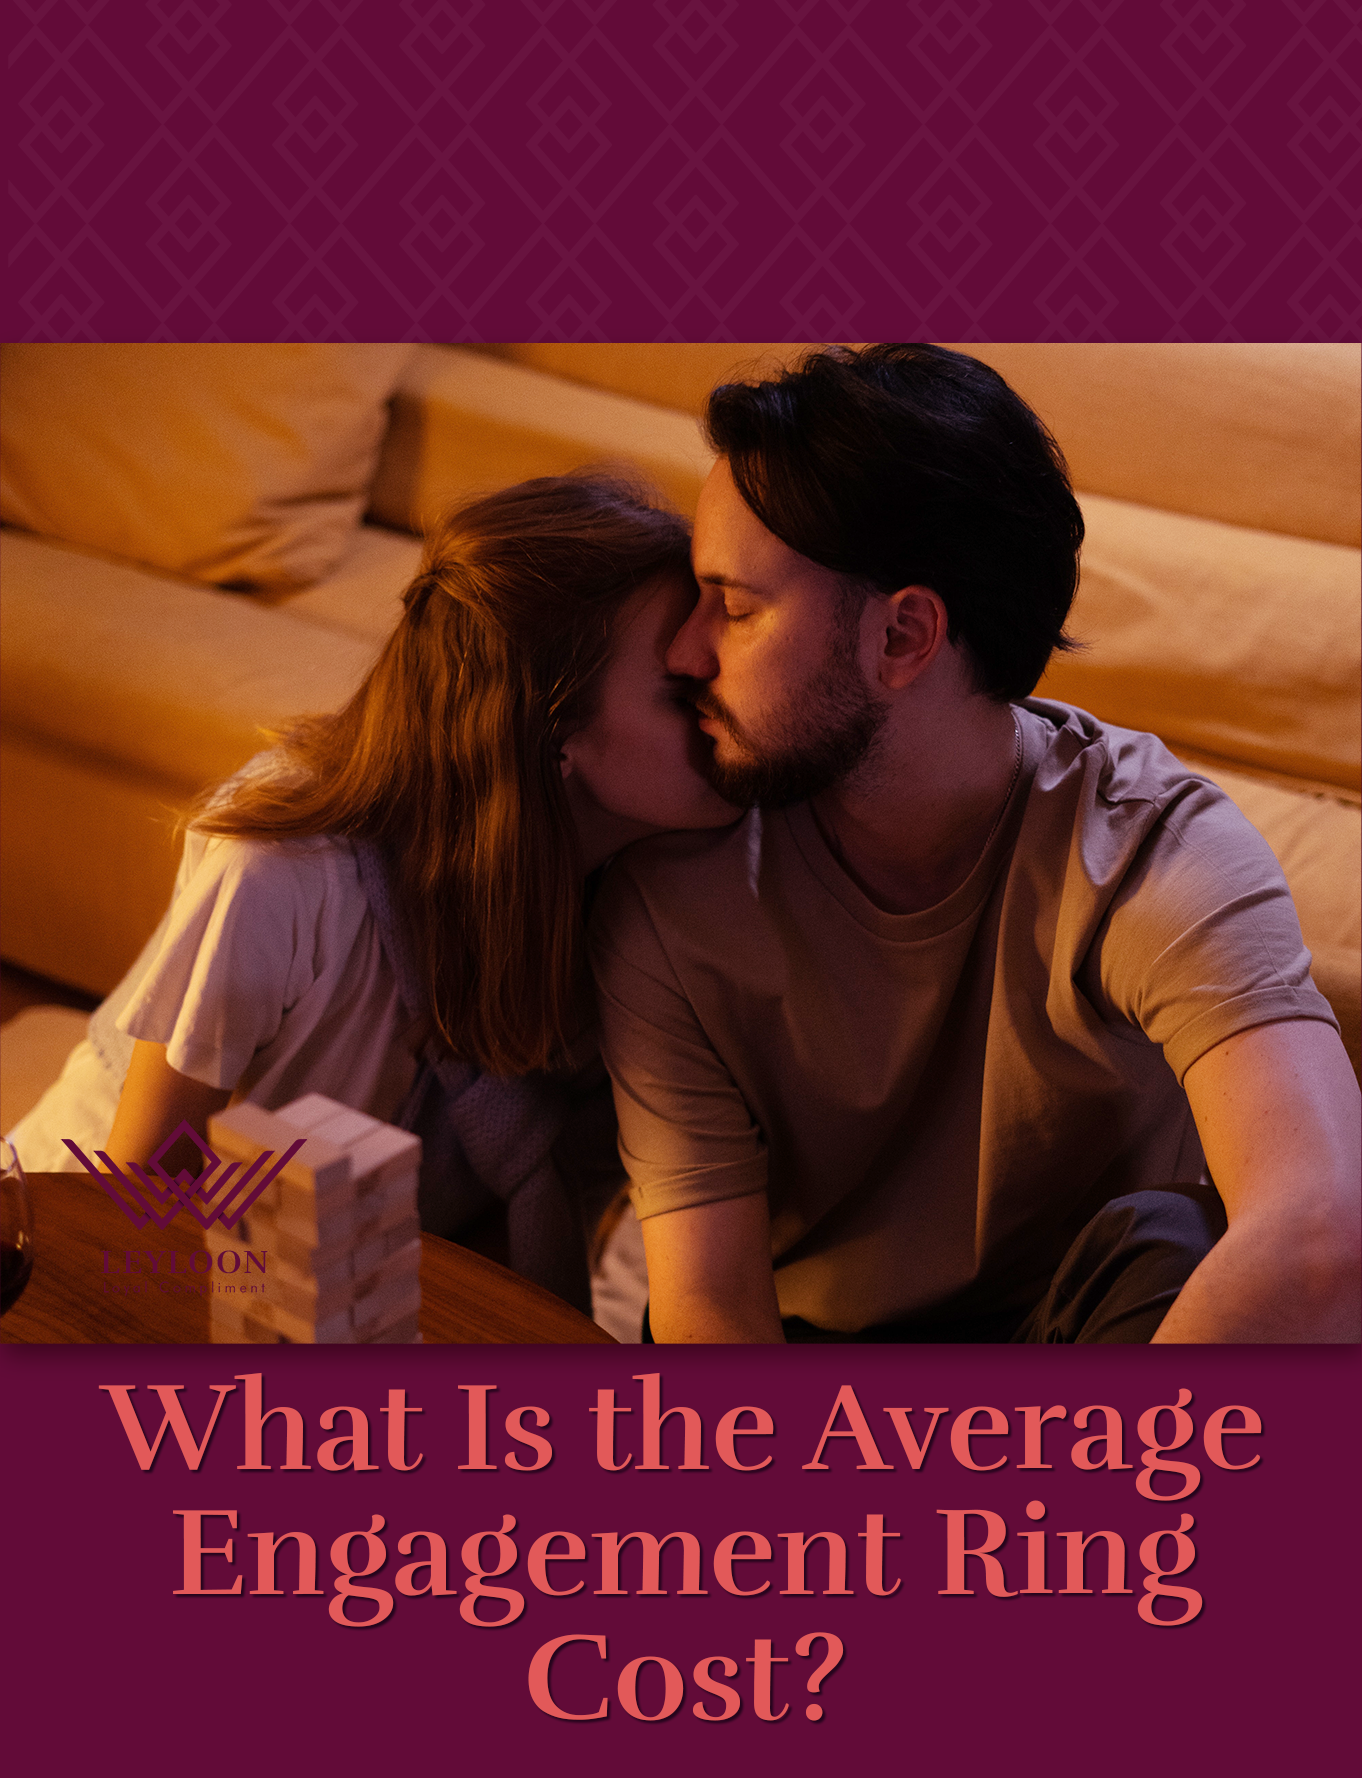 What Is the Average Engagement Ring Cost?